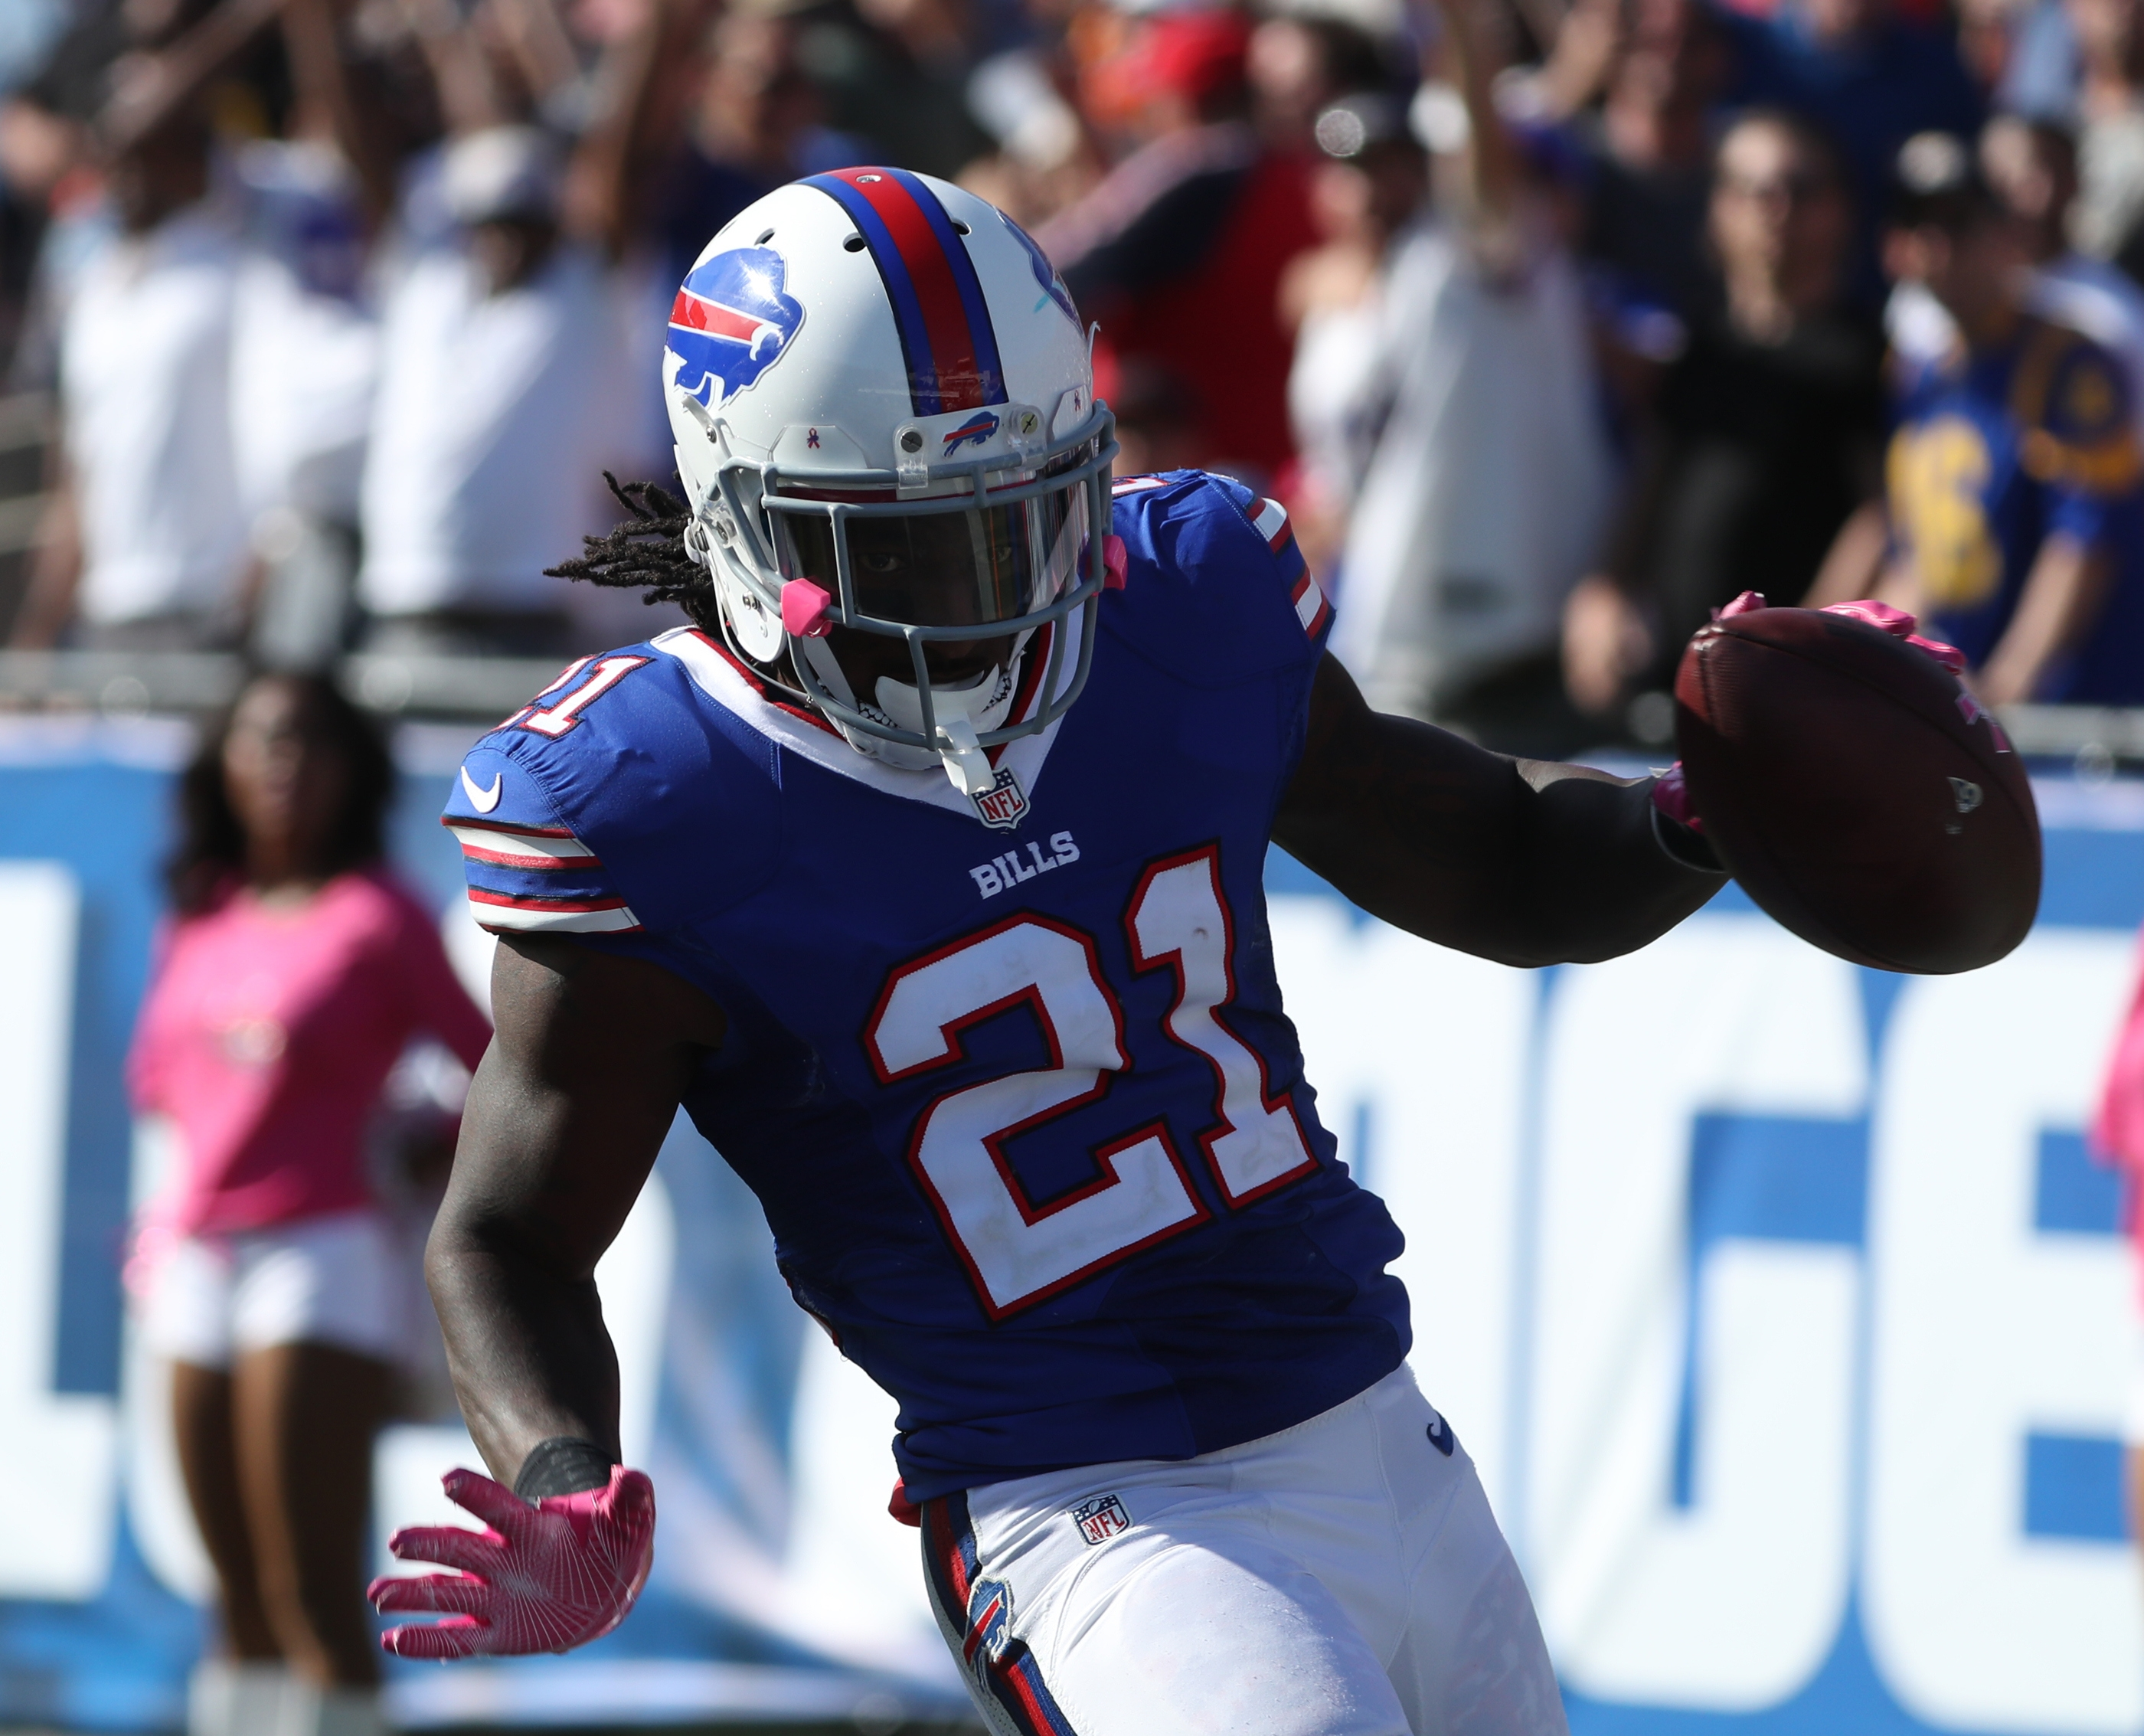 Buffalo Bills defensive back Nickell Robey (21) returns an interception for a touchdown in the third quarter.